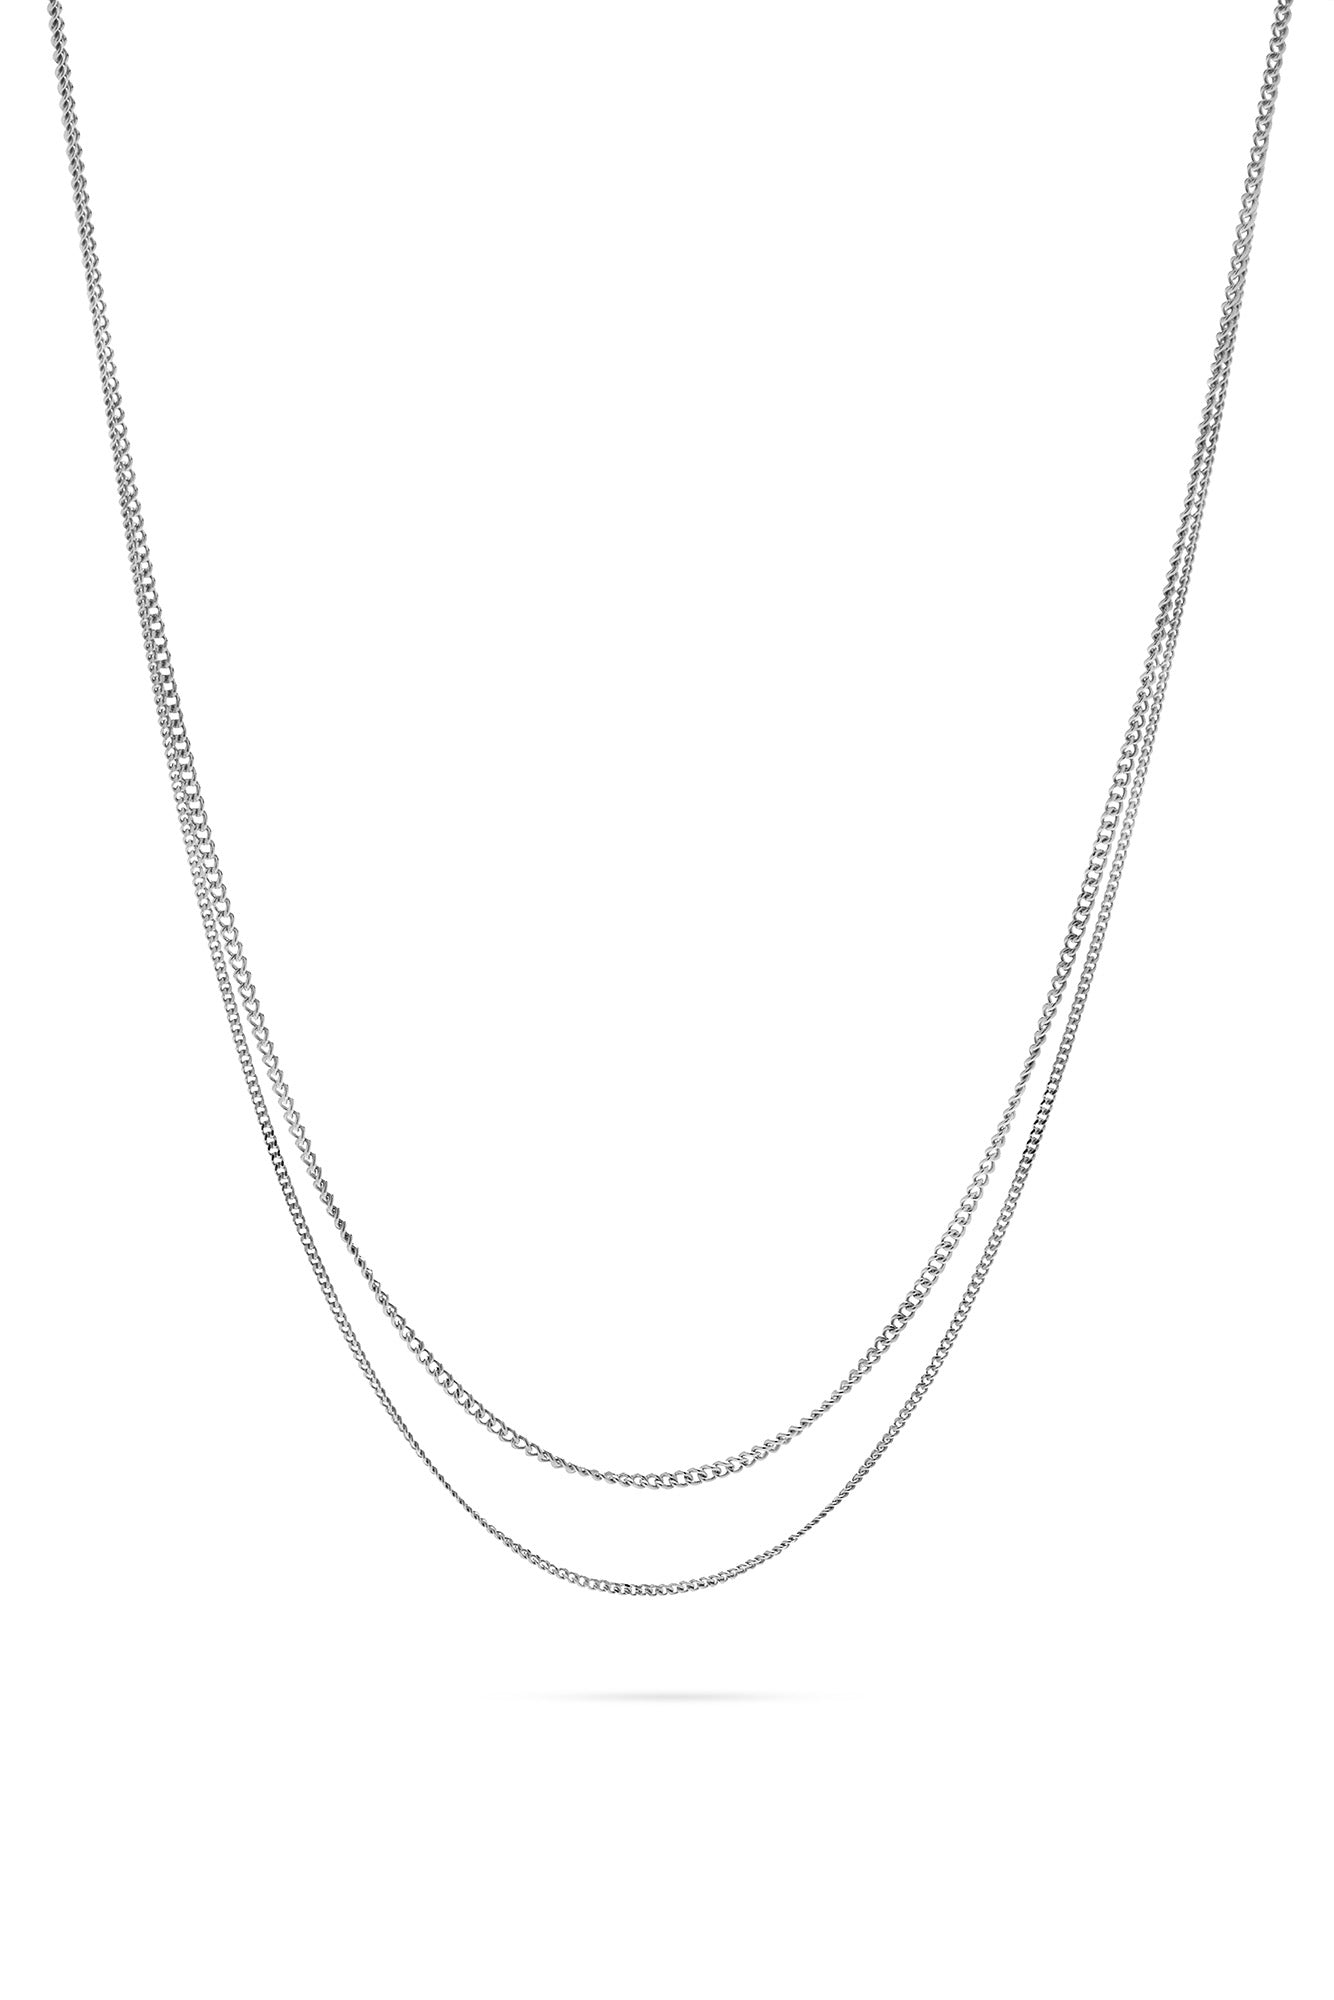 LE DOUBLE GRUMETTA NECKLACE